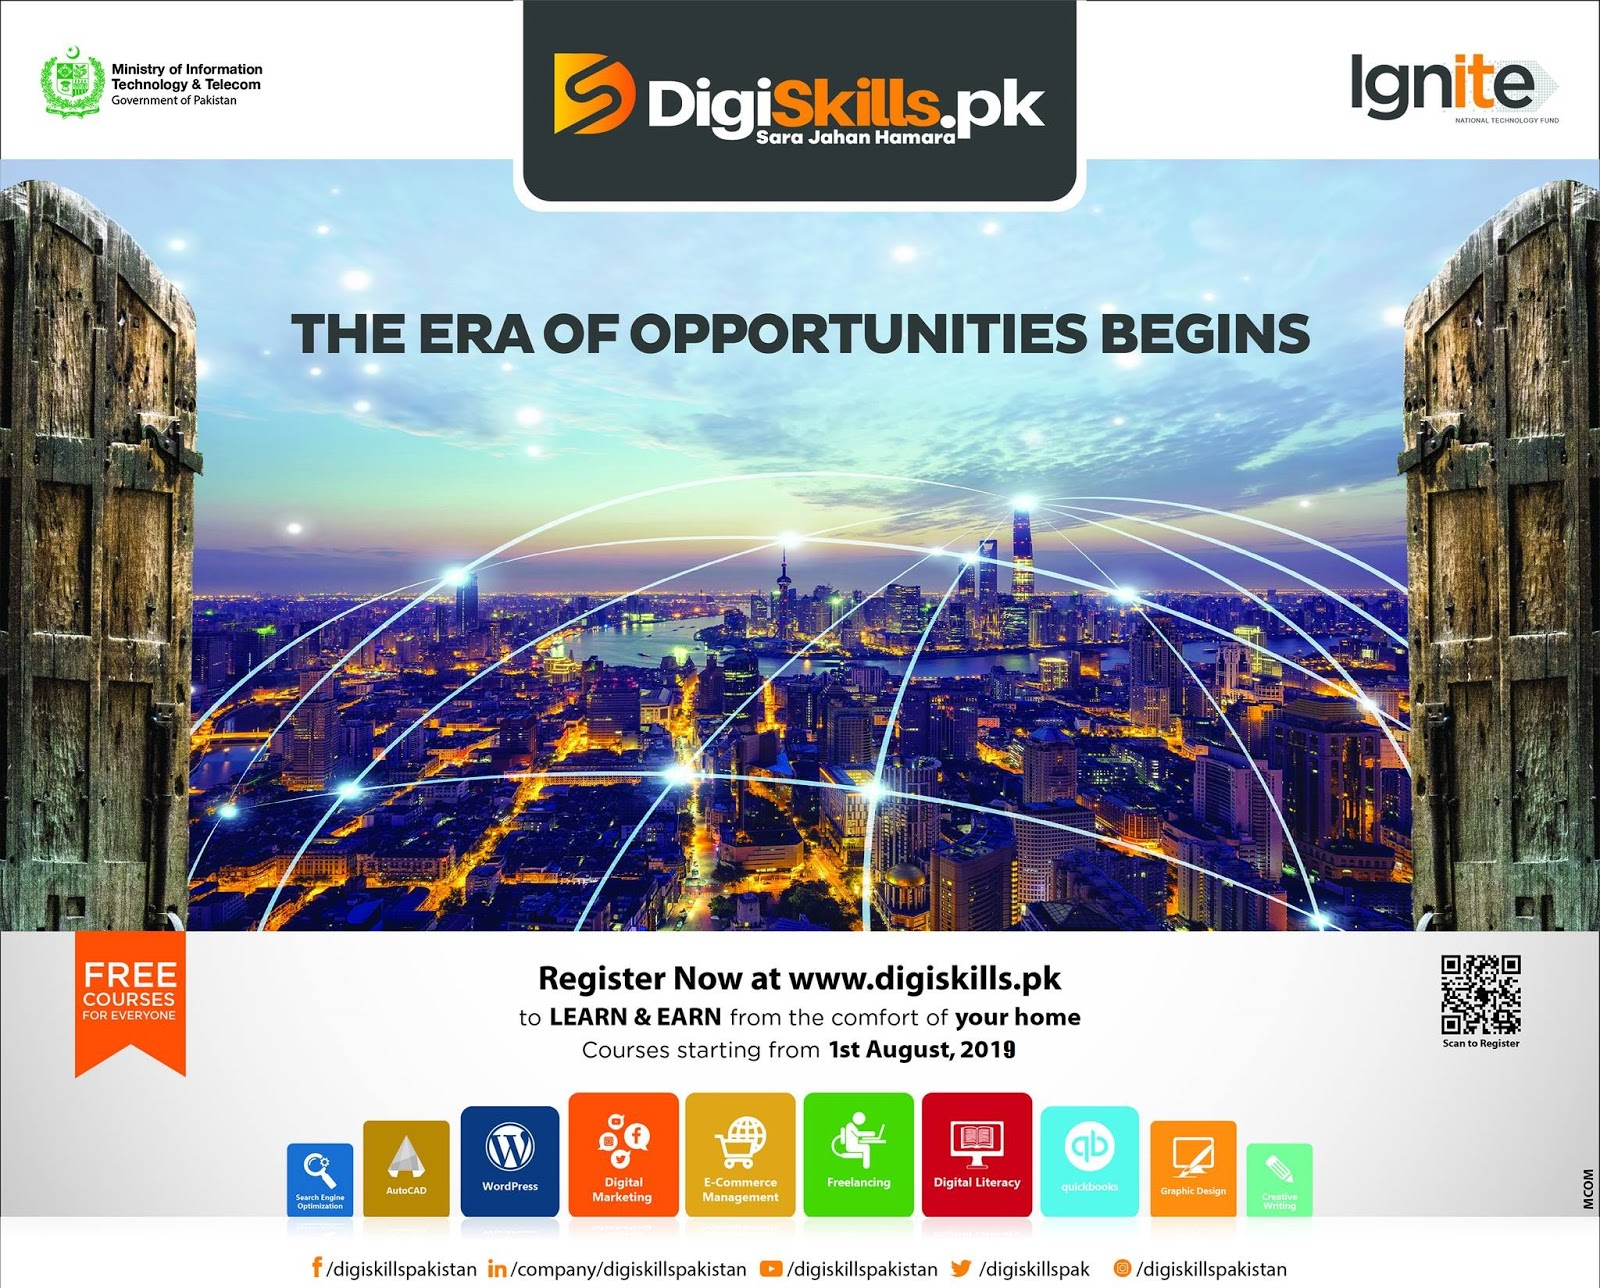 Digiskills Training Program 2019, Join Digiskills 2019 July Free Online Courses by Govt of Pakistan